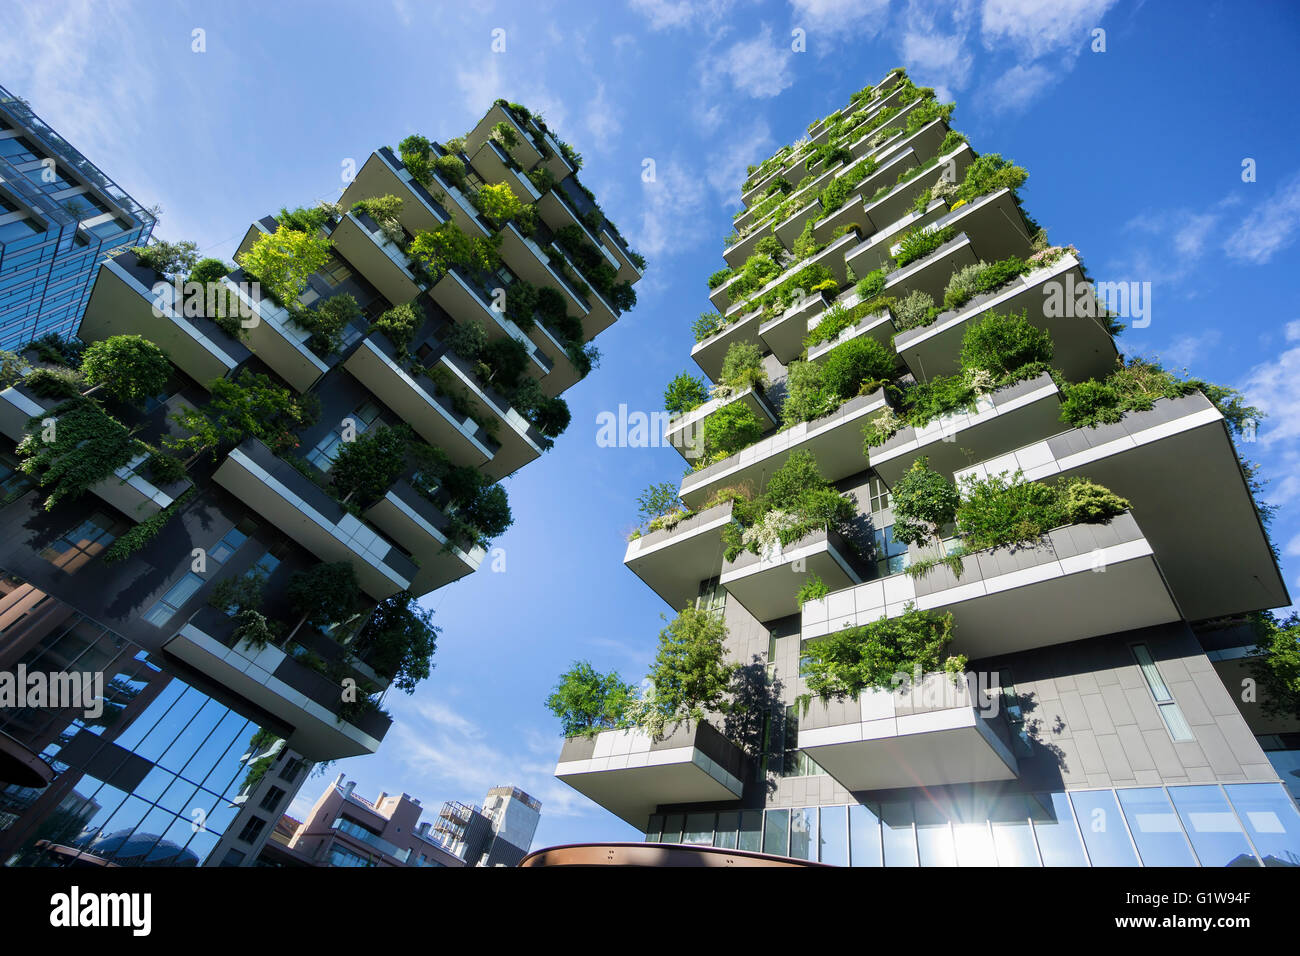 MILAN, ITALY - MAY 15, 2016: Bosco Verticale (Vertical Forest) low view. Designed by Stefano Boeri, sustainable - Stock Image